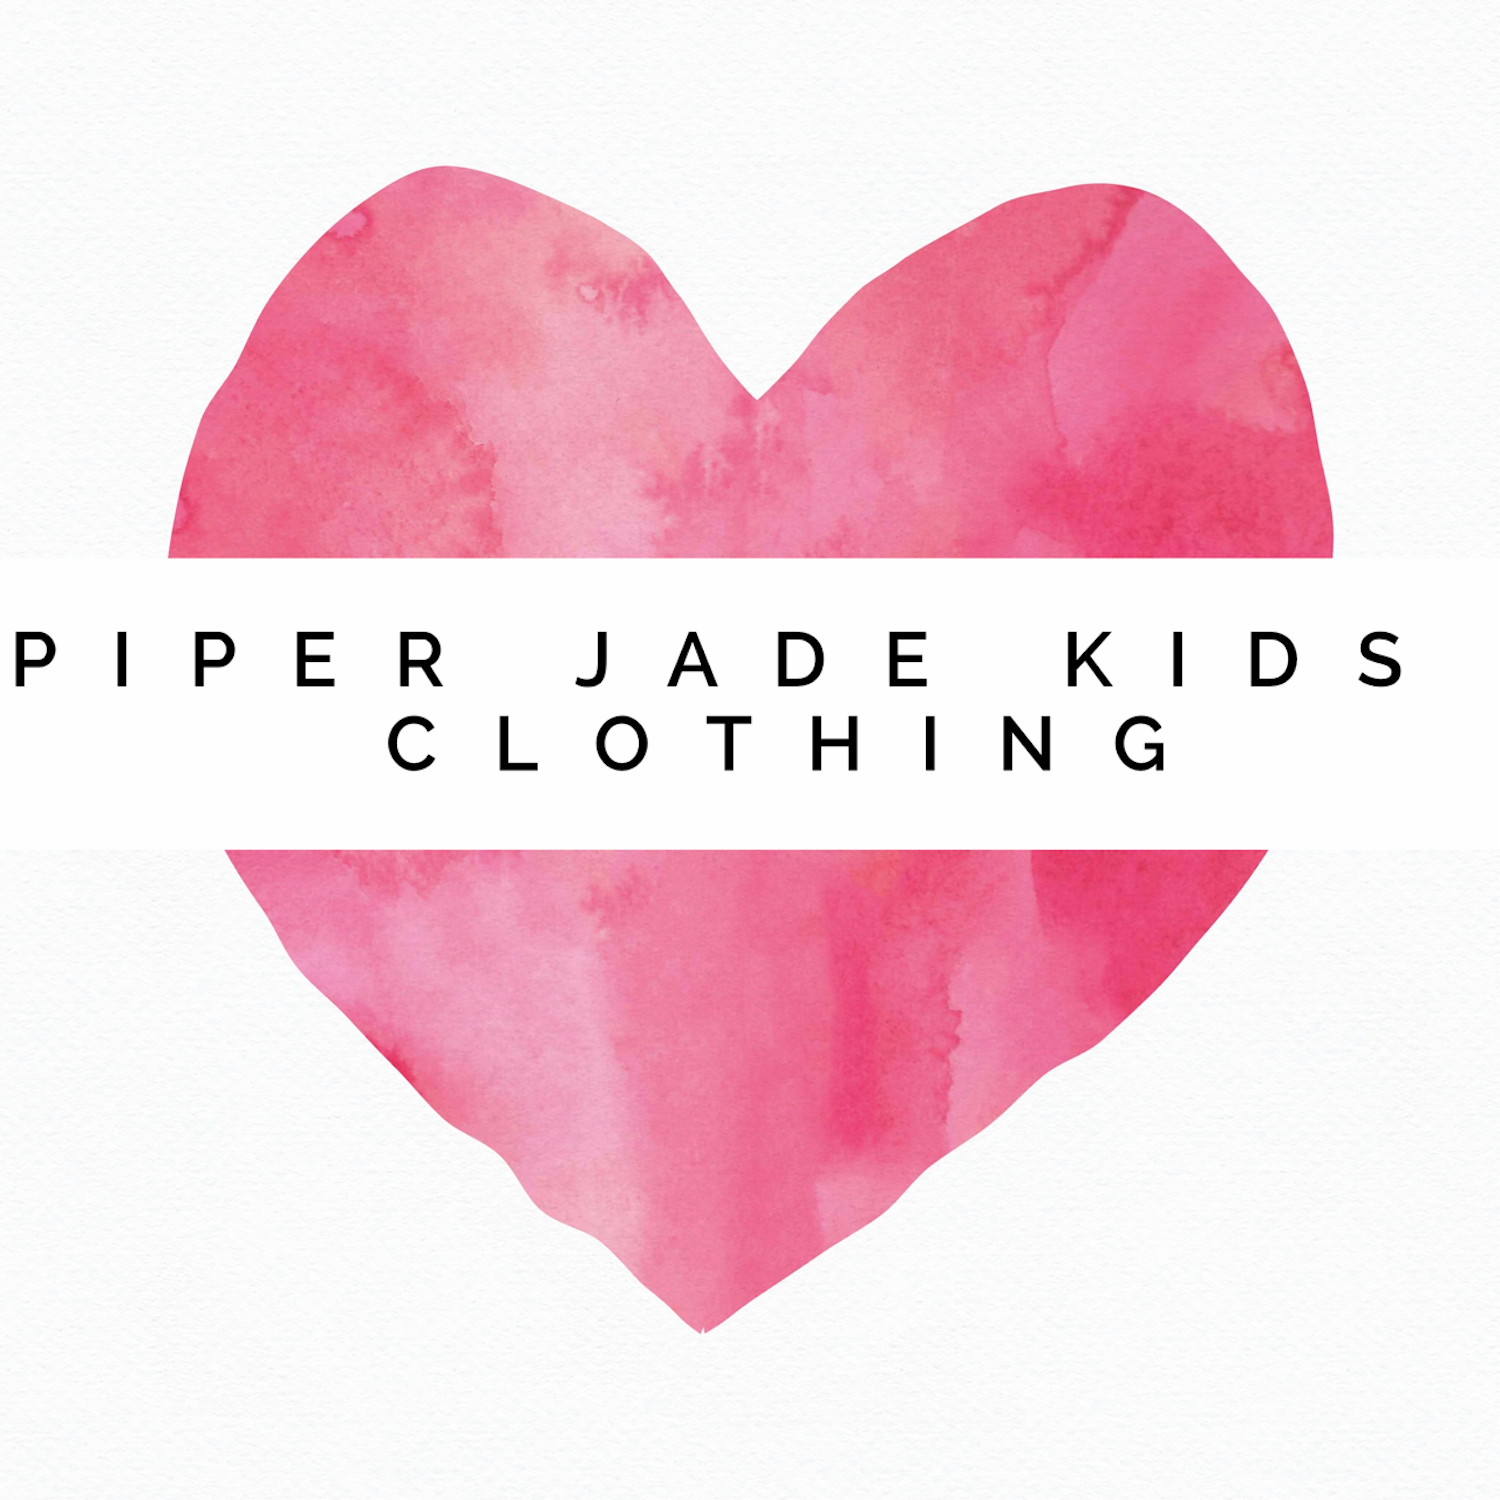 PIPER JADE KIDS